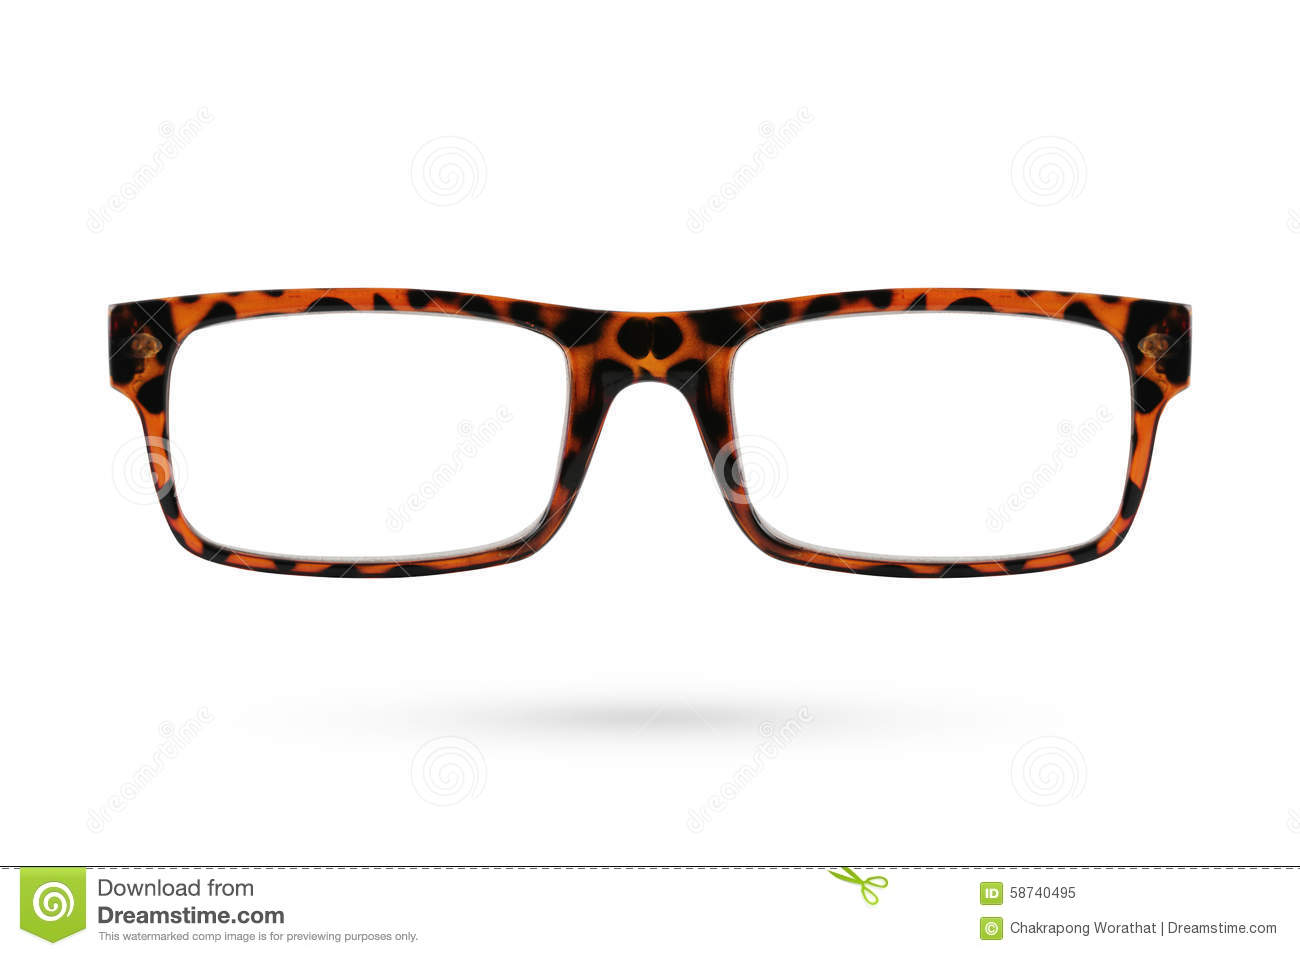 Plastic Framed Fashion Glasses : Fashion Glasses Style Plastic-framed Isolated On White ...